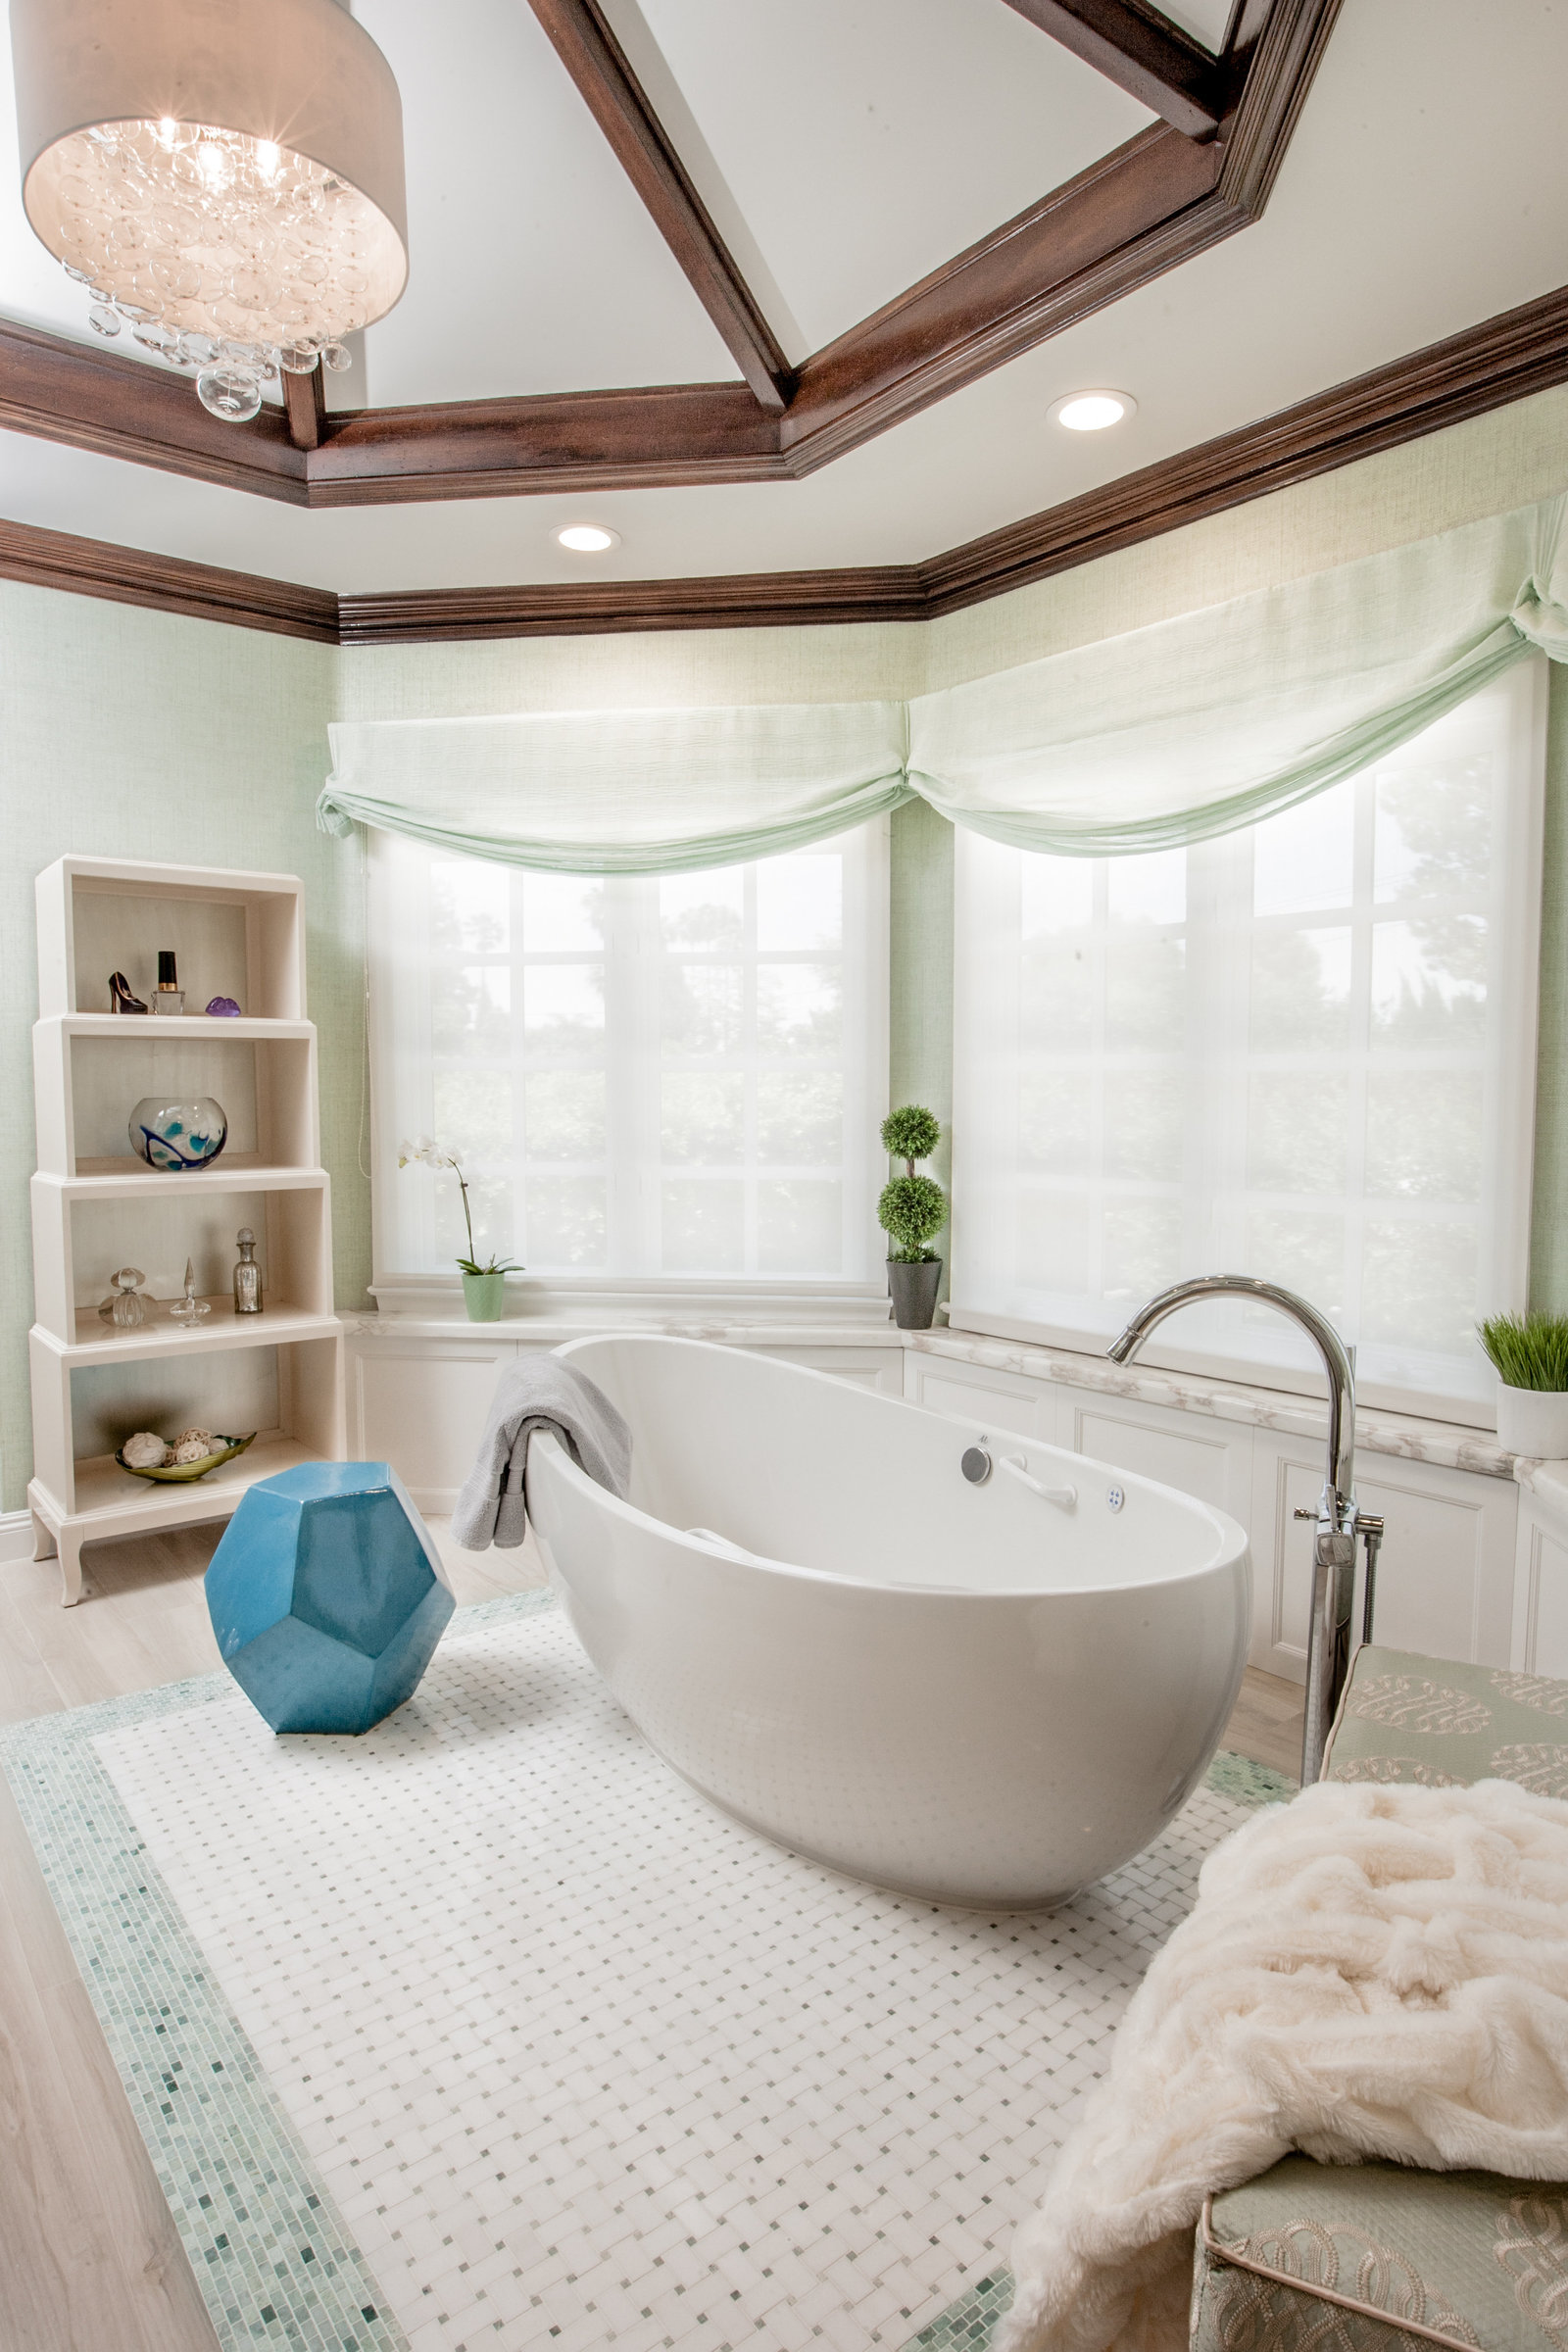 Glamorous Soaking Tub Bathroom Design